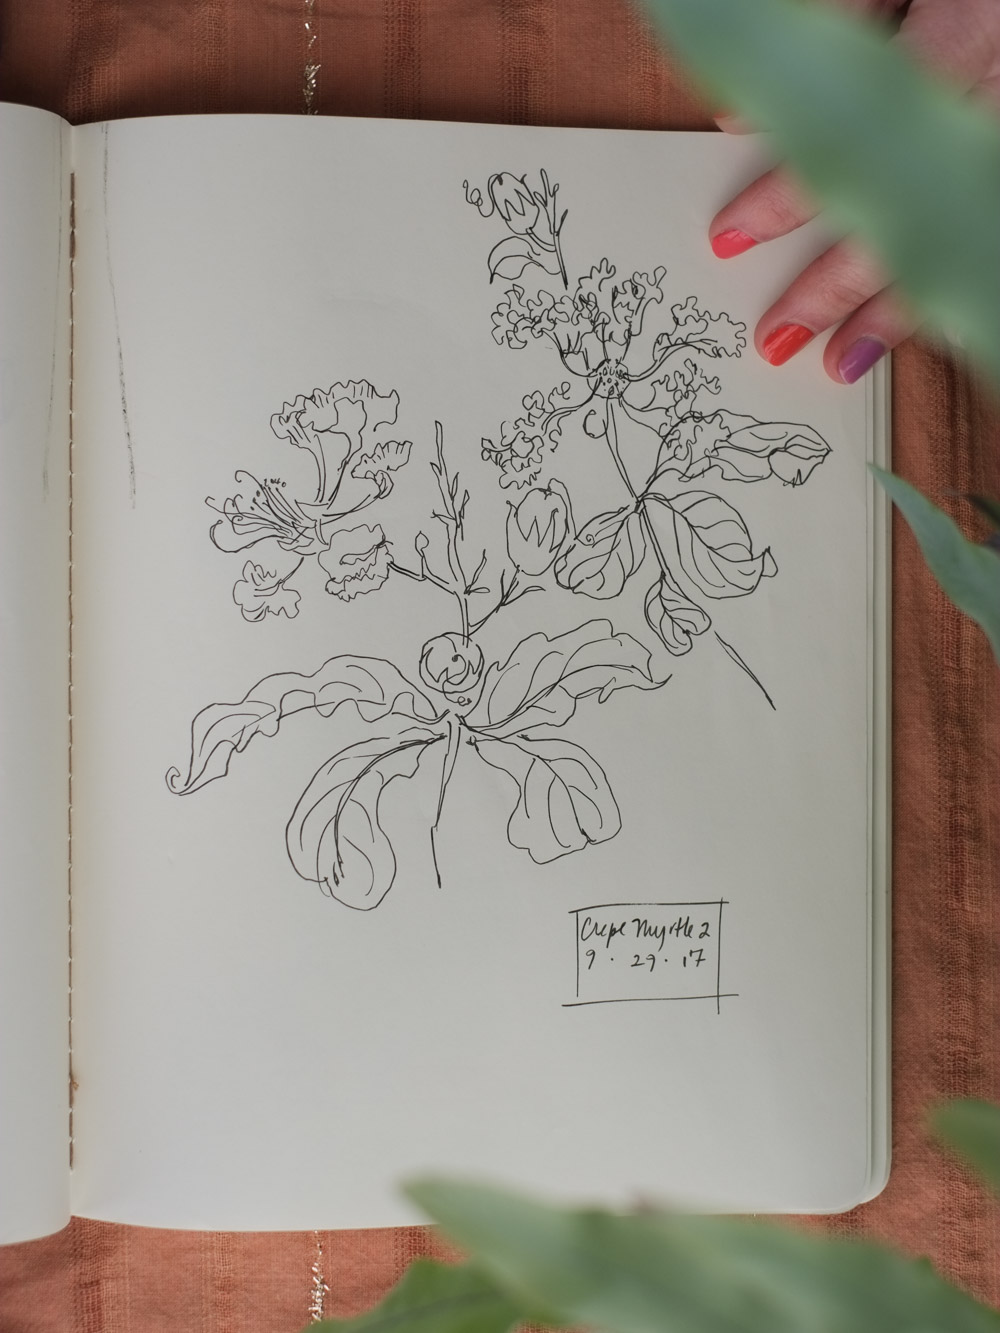 Erin_Ellis_daily_botanical_blind_drawings_sept_2017.jpg-8.jpg